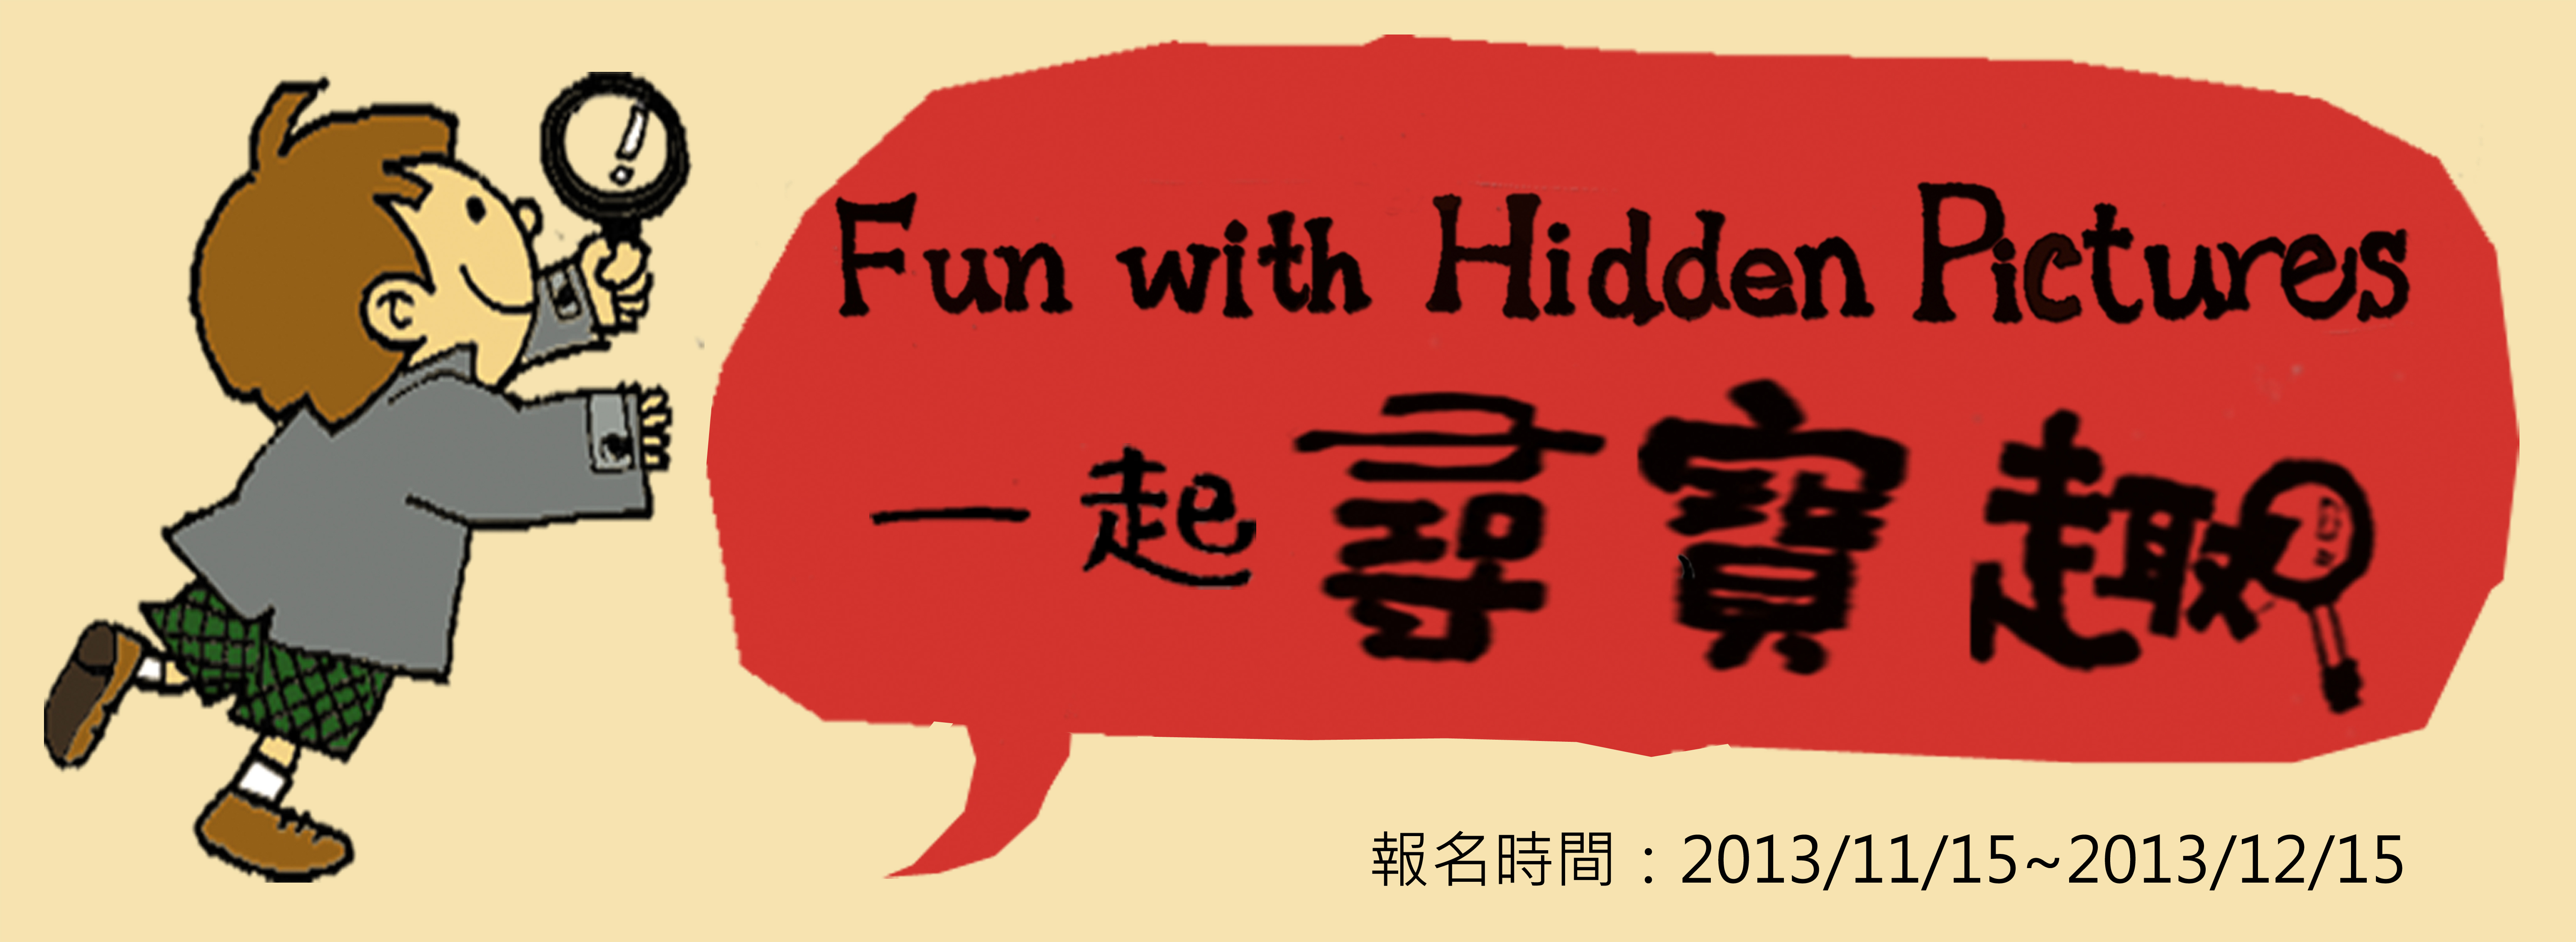 Fun with Hidden Pictures 尋寶趣